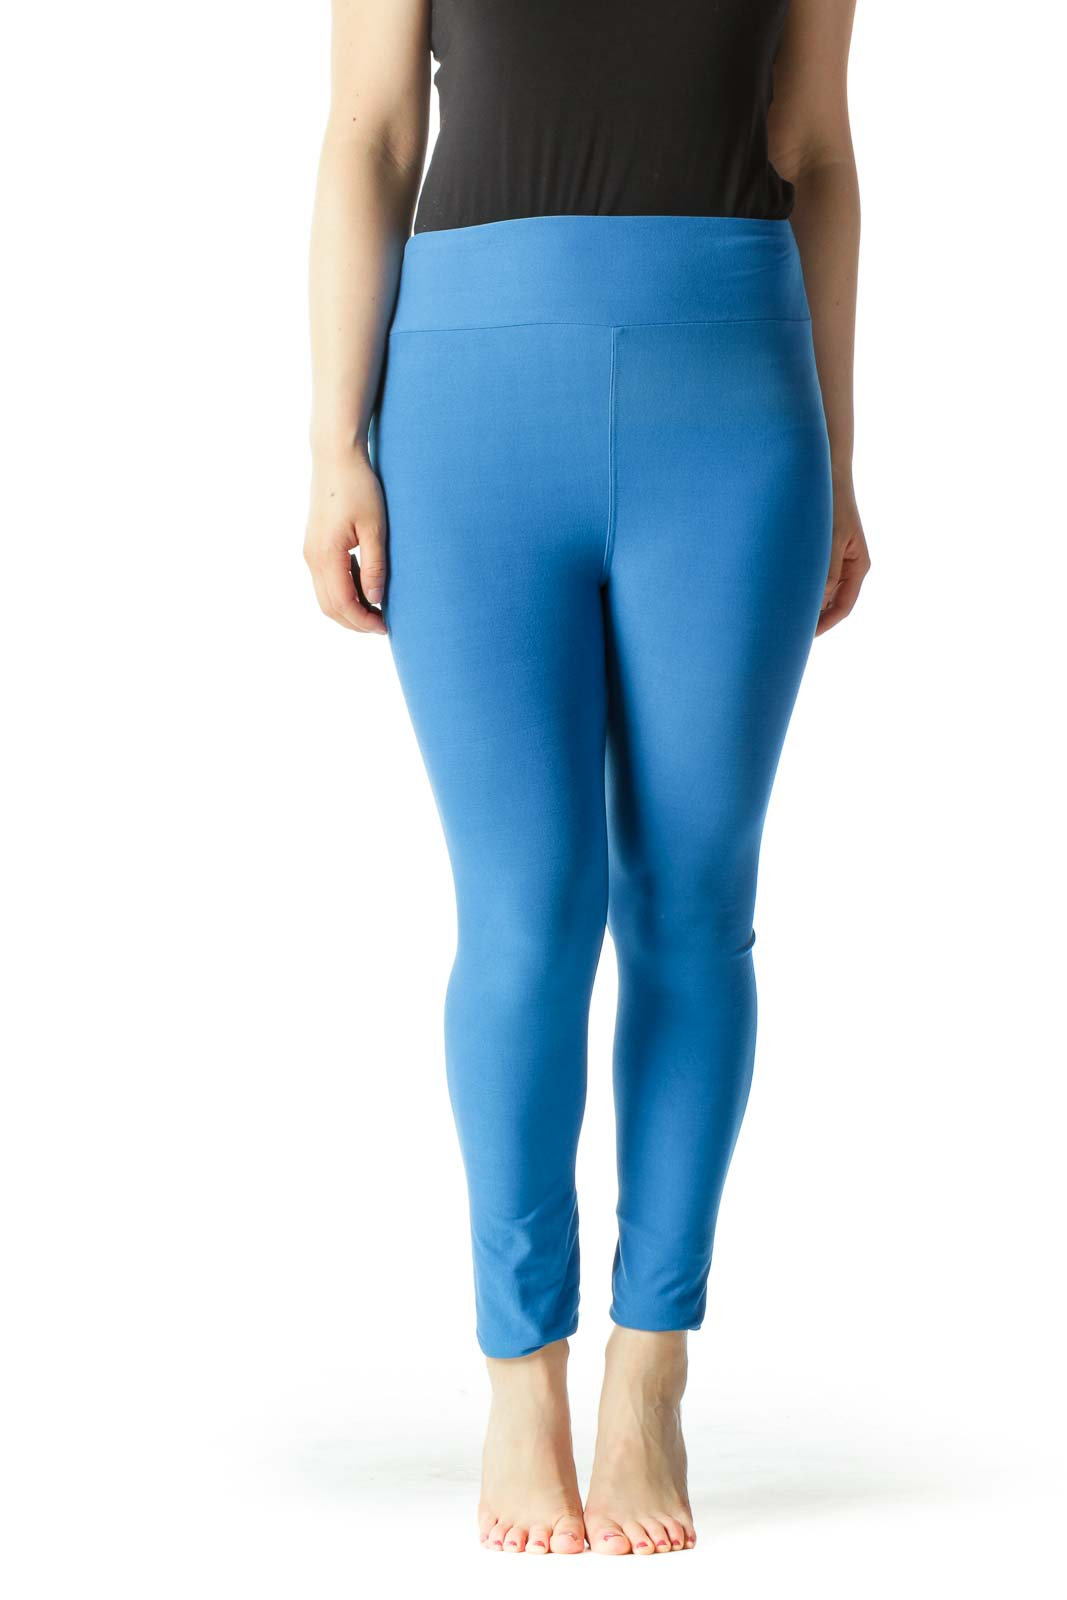 Light Blue One Size Legging